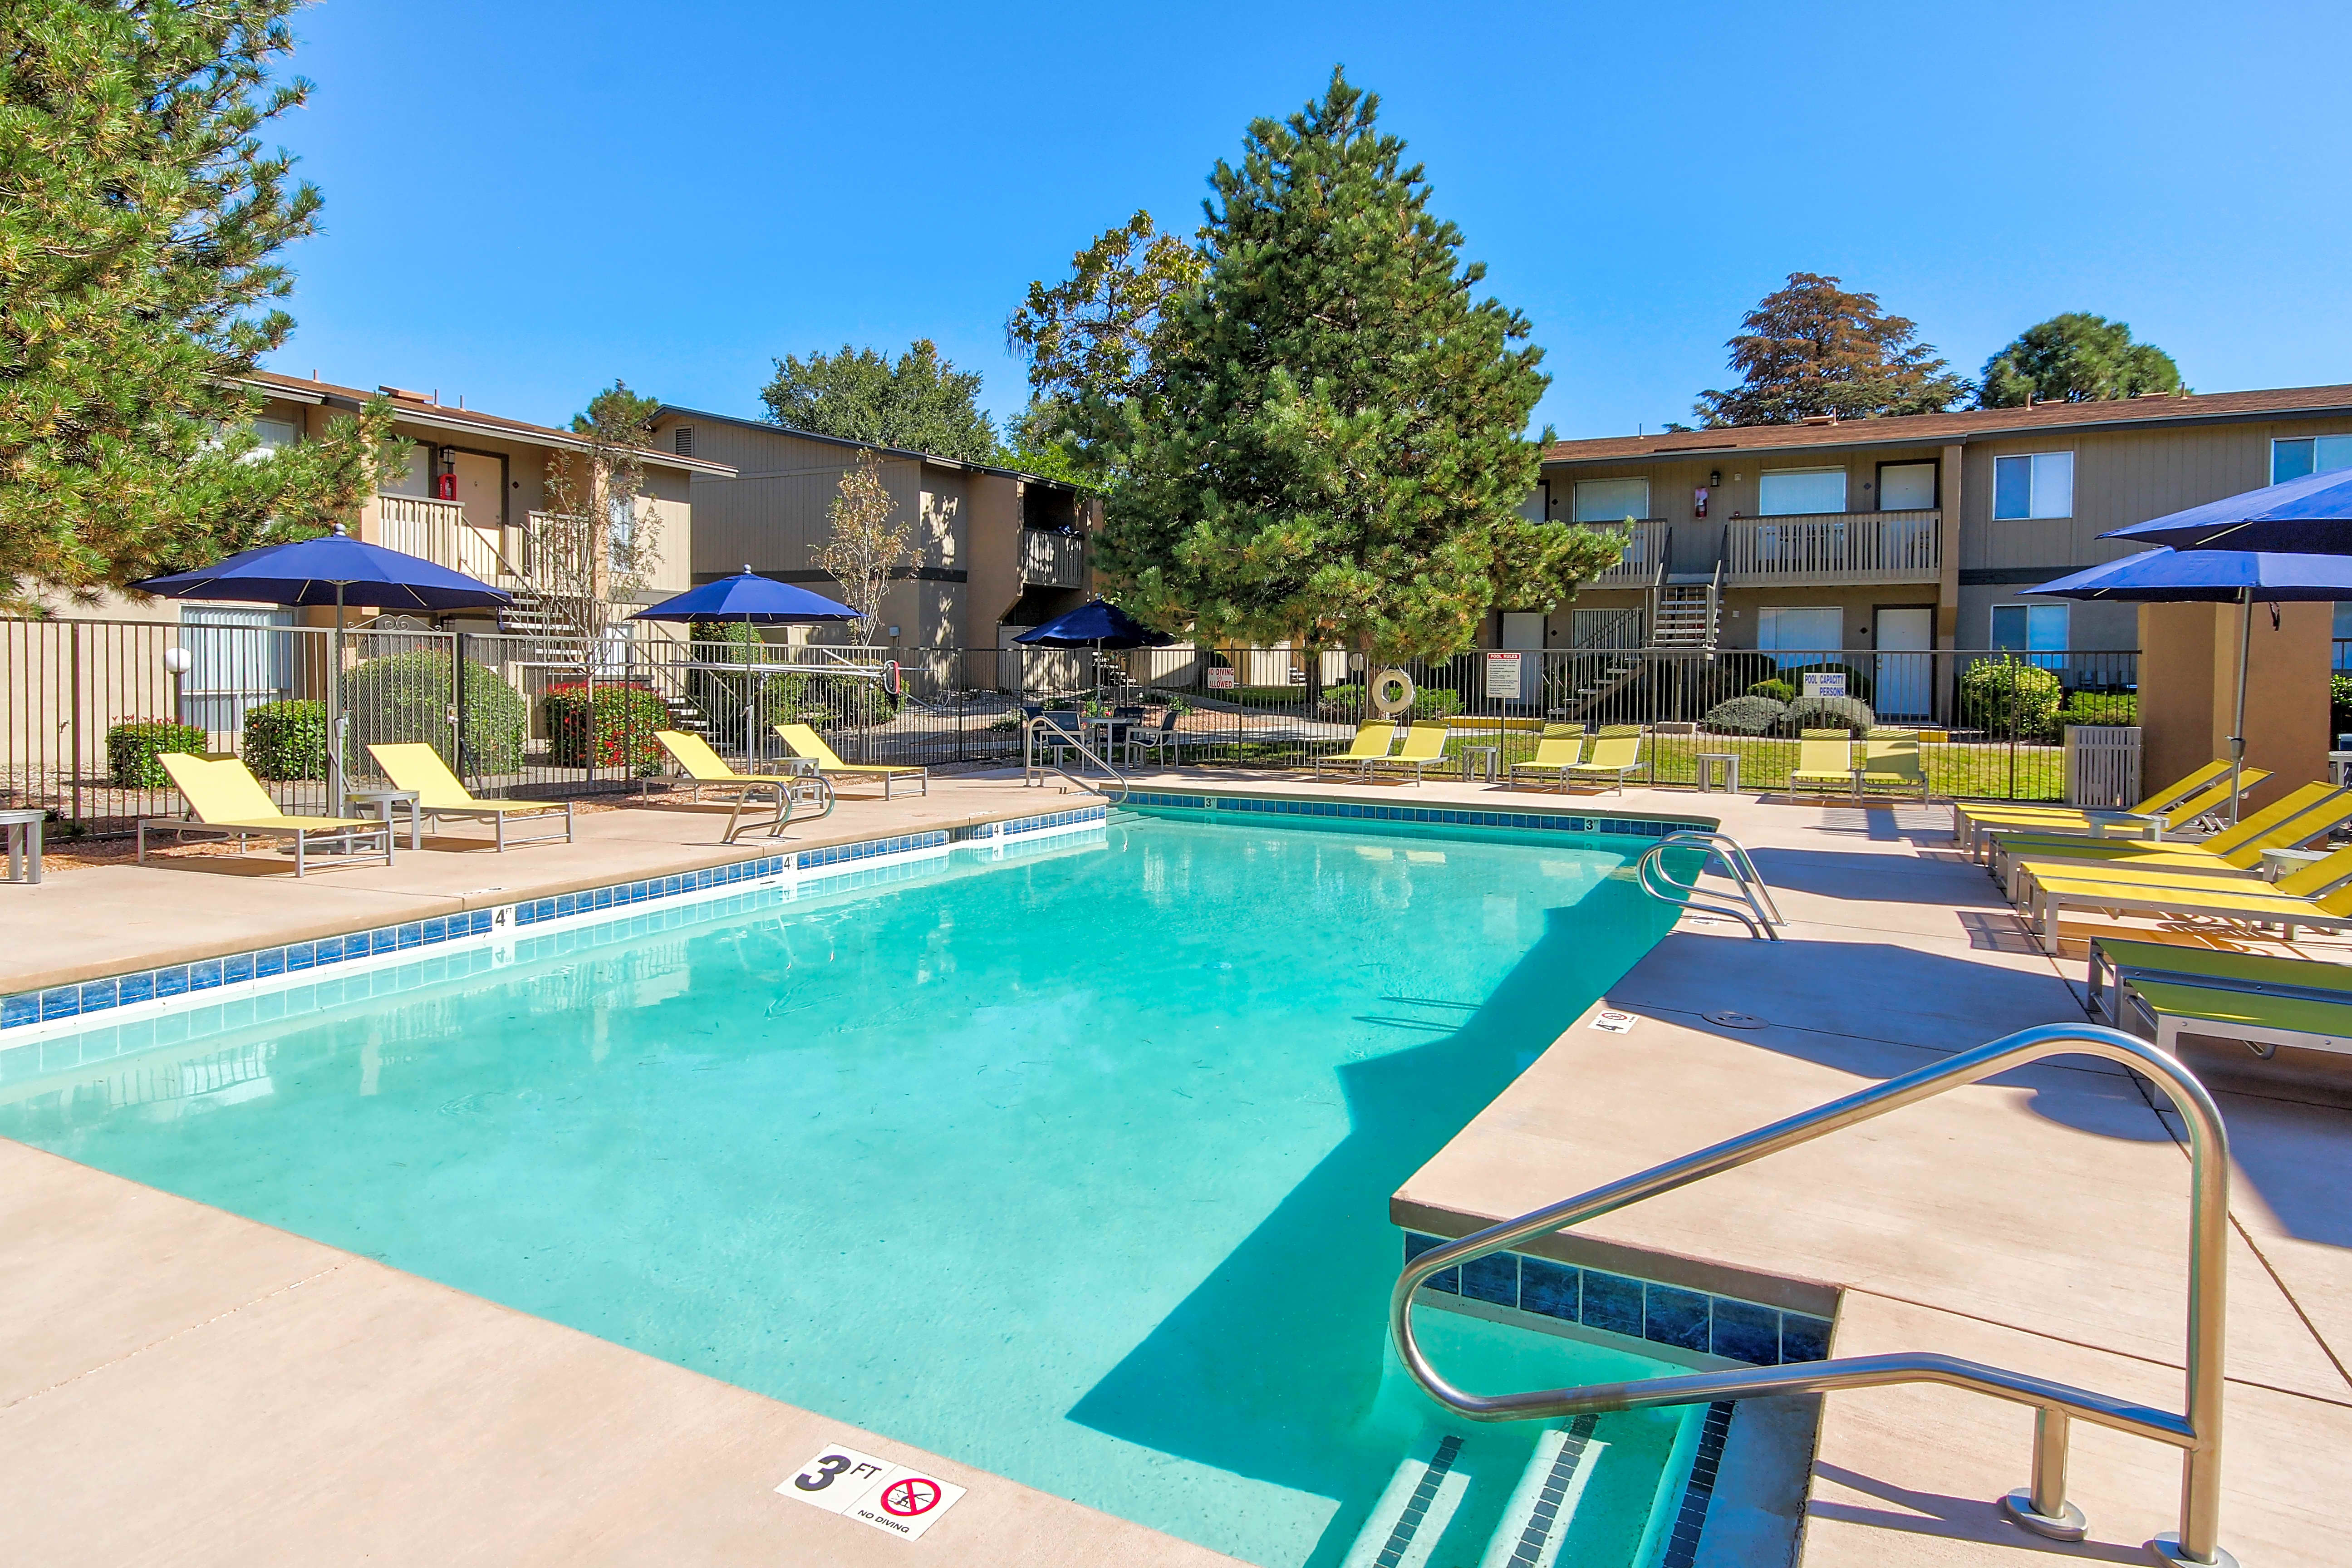 Apartments Near New Mexico Lincoln Place for University of New Mexico Students in Albuquerque, NM